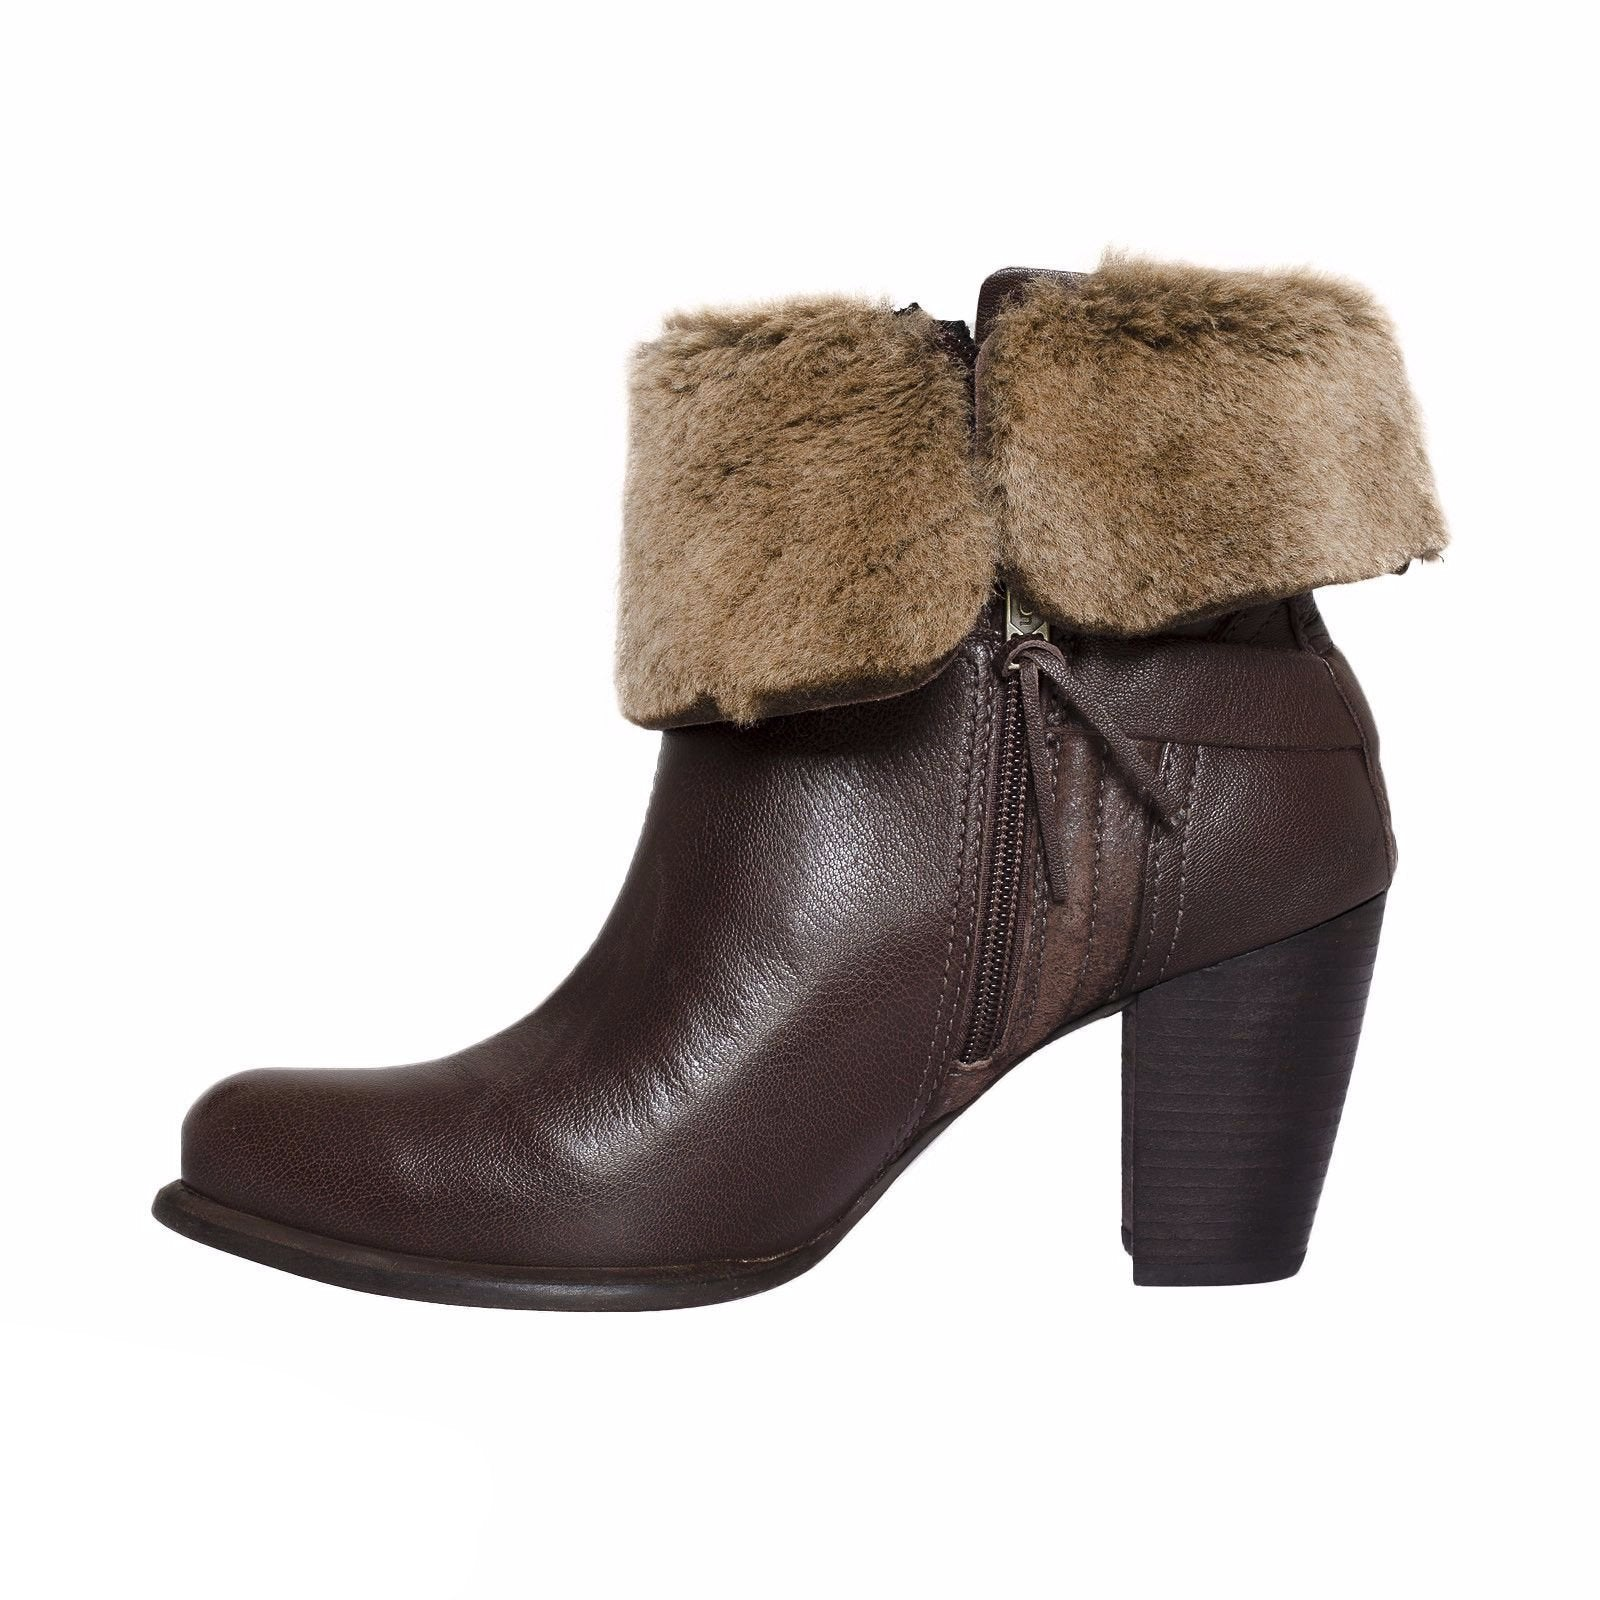 66cae10a84c UGG Jayne Stout Boots